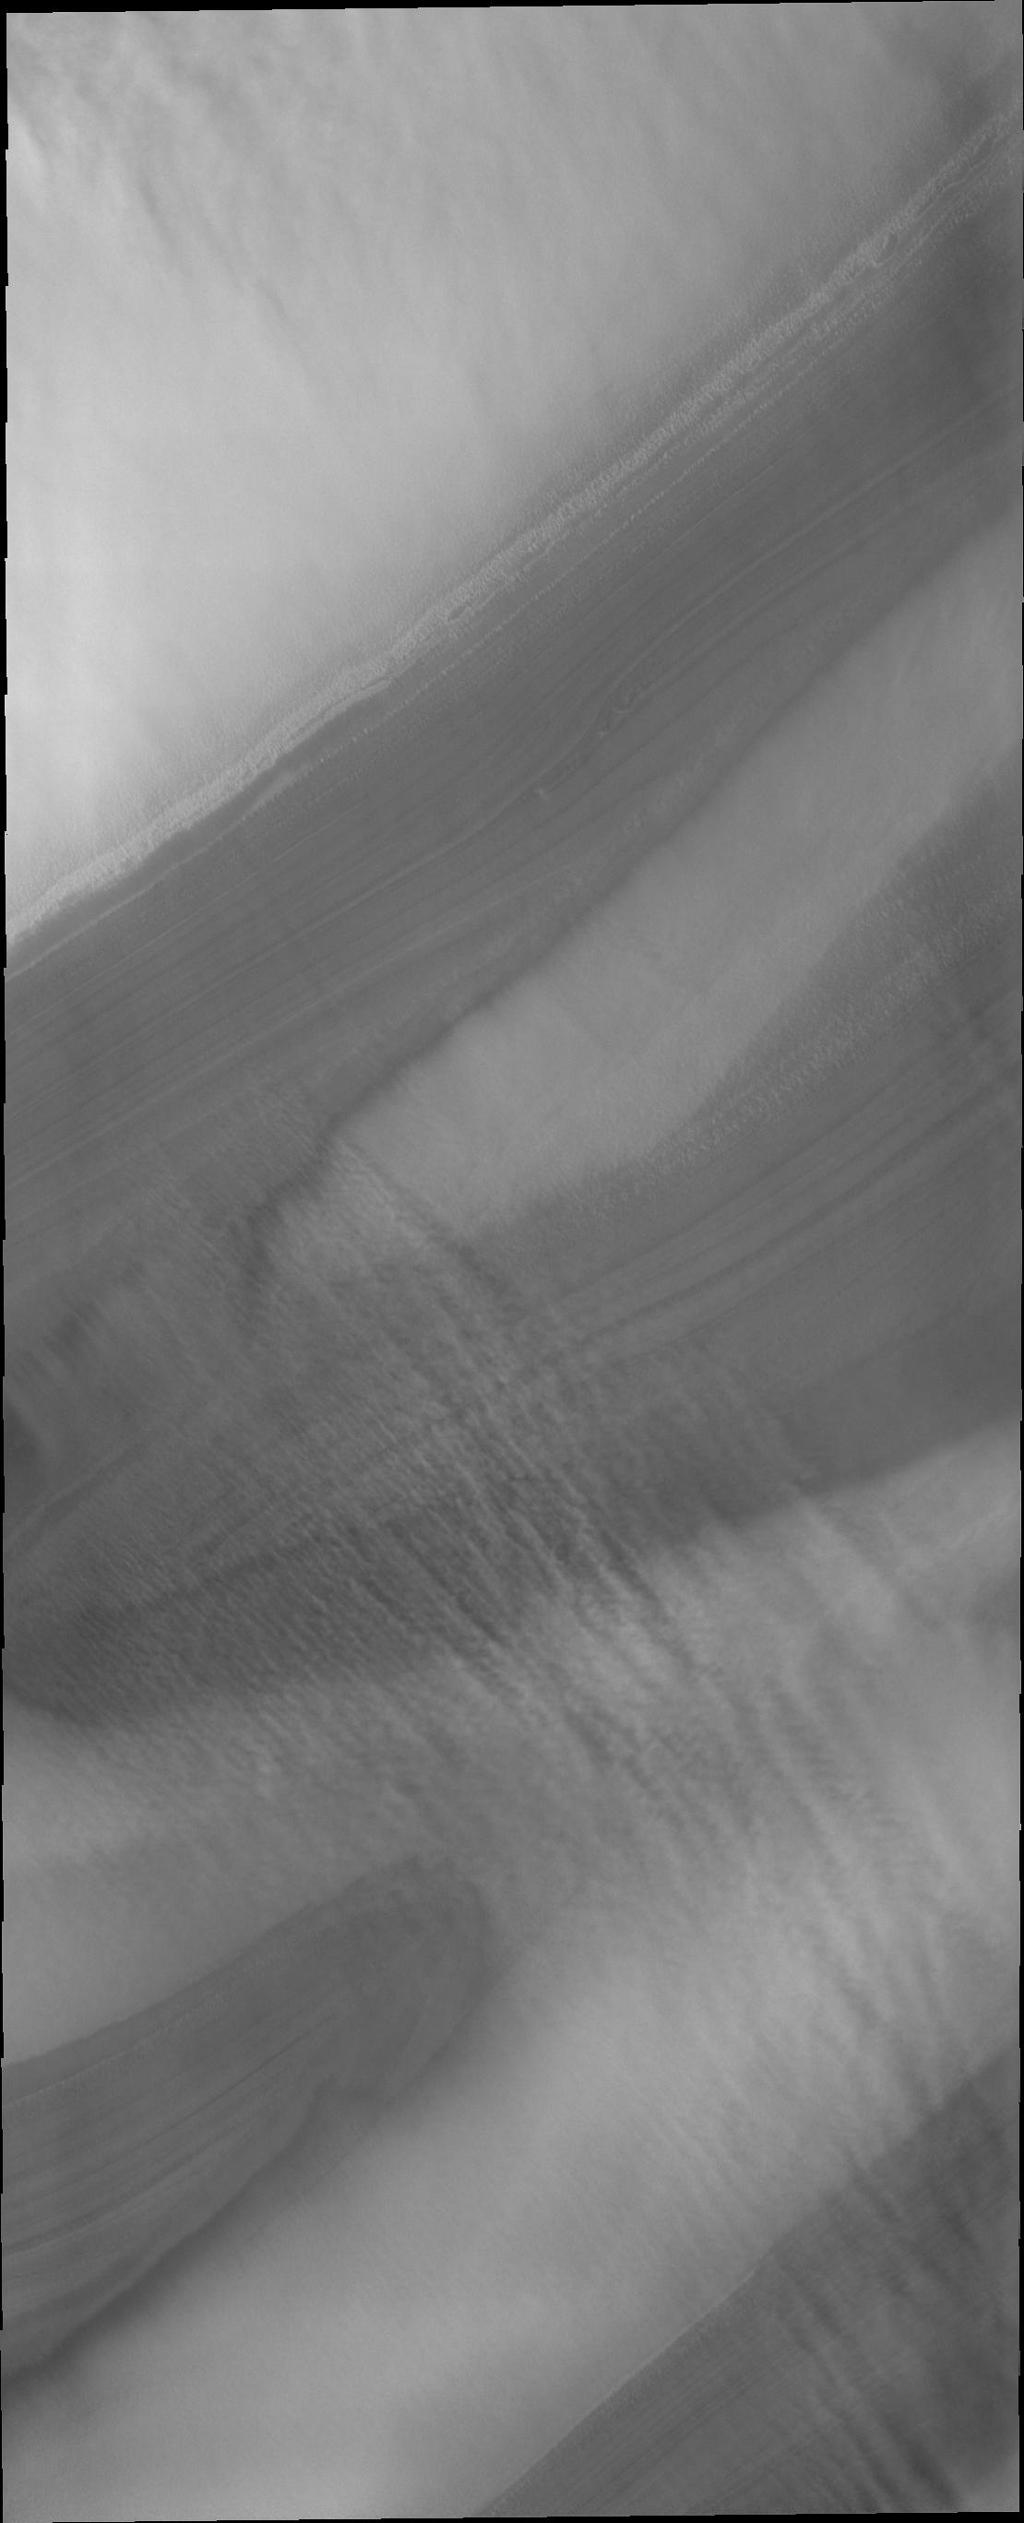 North polar troughs are the typical location to see evidence of strong polar surface winds. This image captured by NASA's 2001 Mars Odyssey shows 'streamers' of clouds created by catabatic winds.